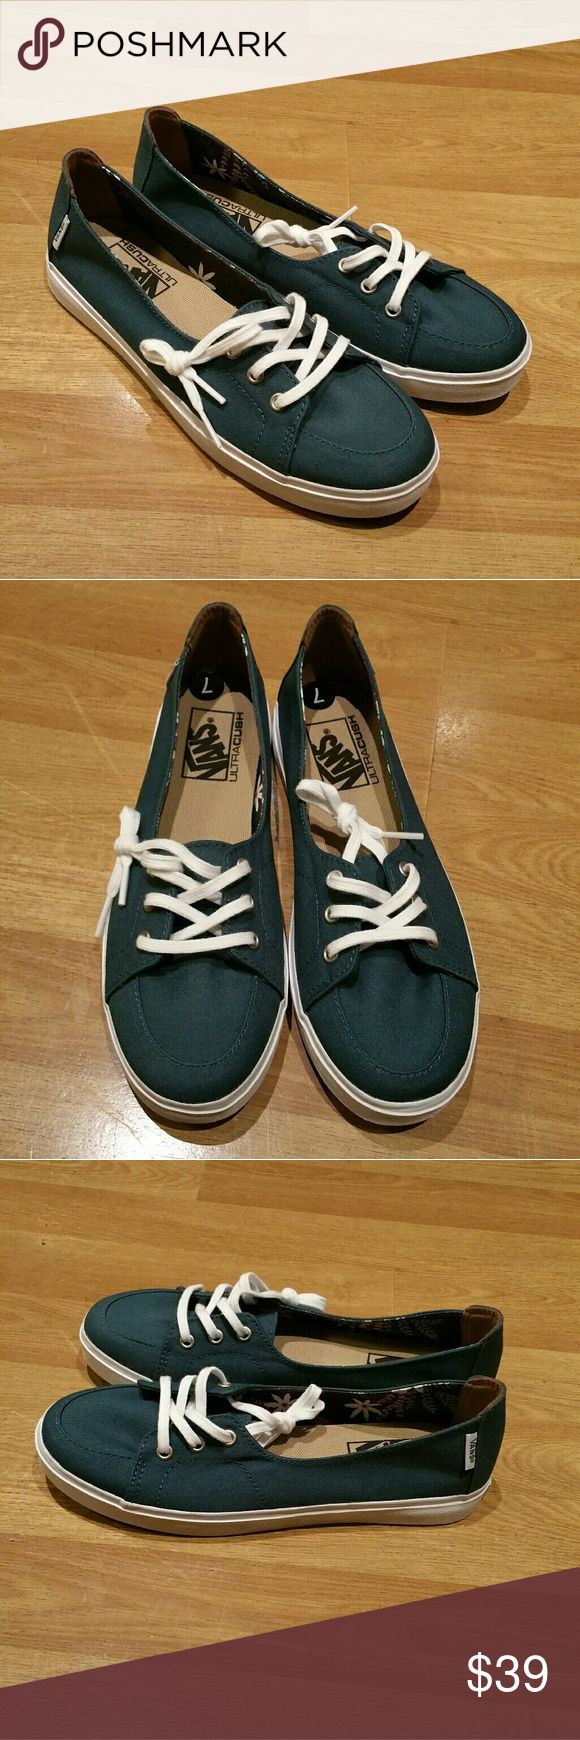 Womens Vans sneakers Brand New. Size 7. Never worn. Vans Shoes Sneakers